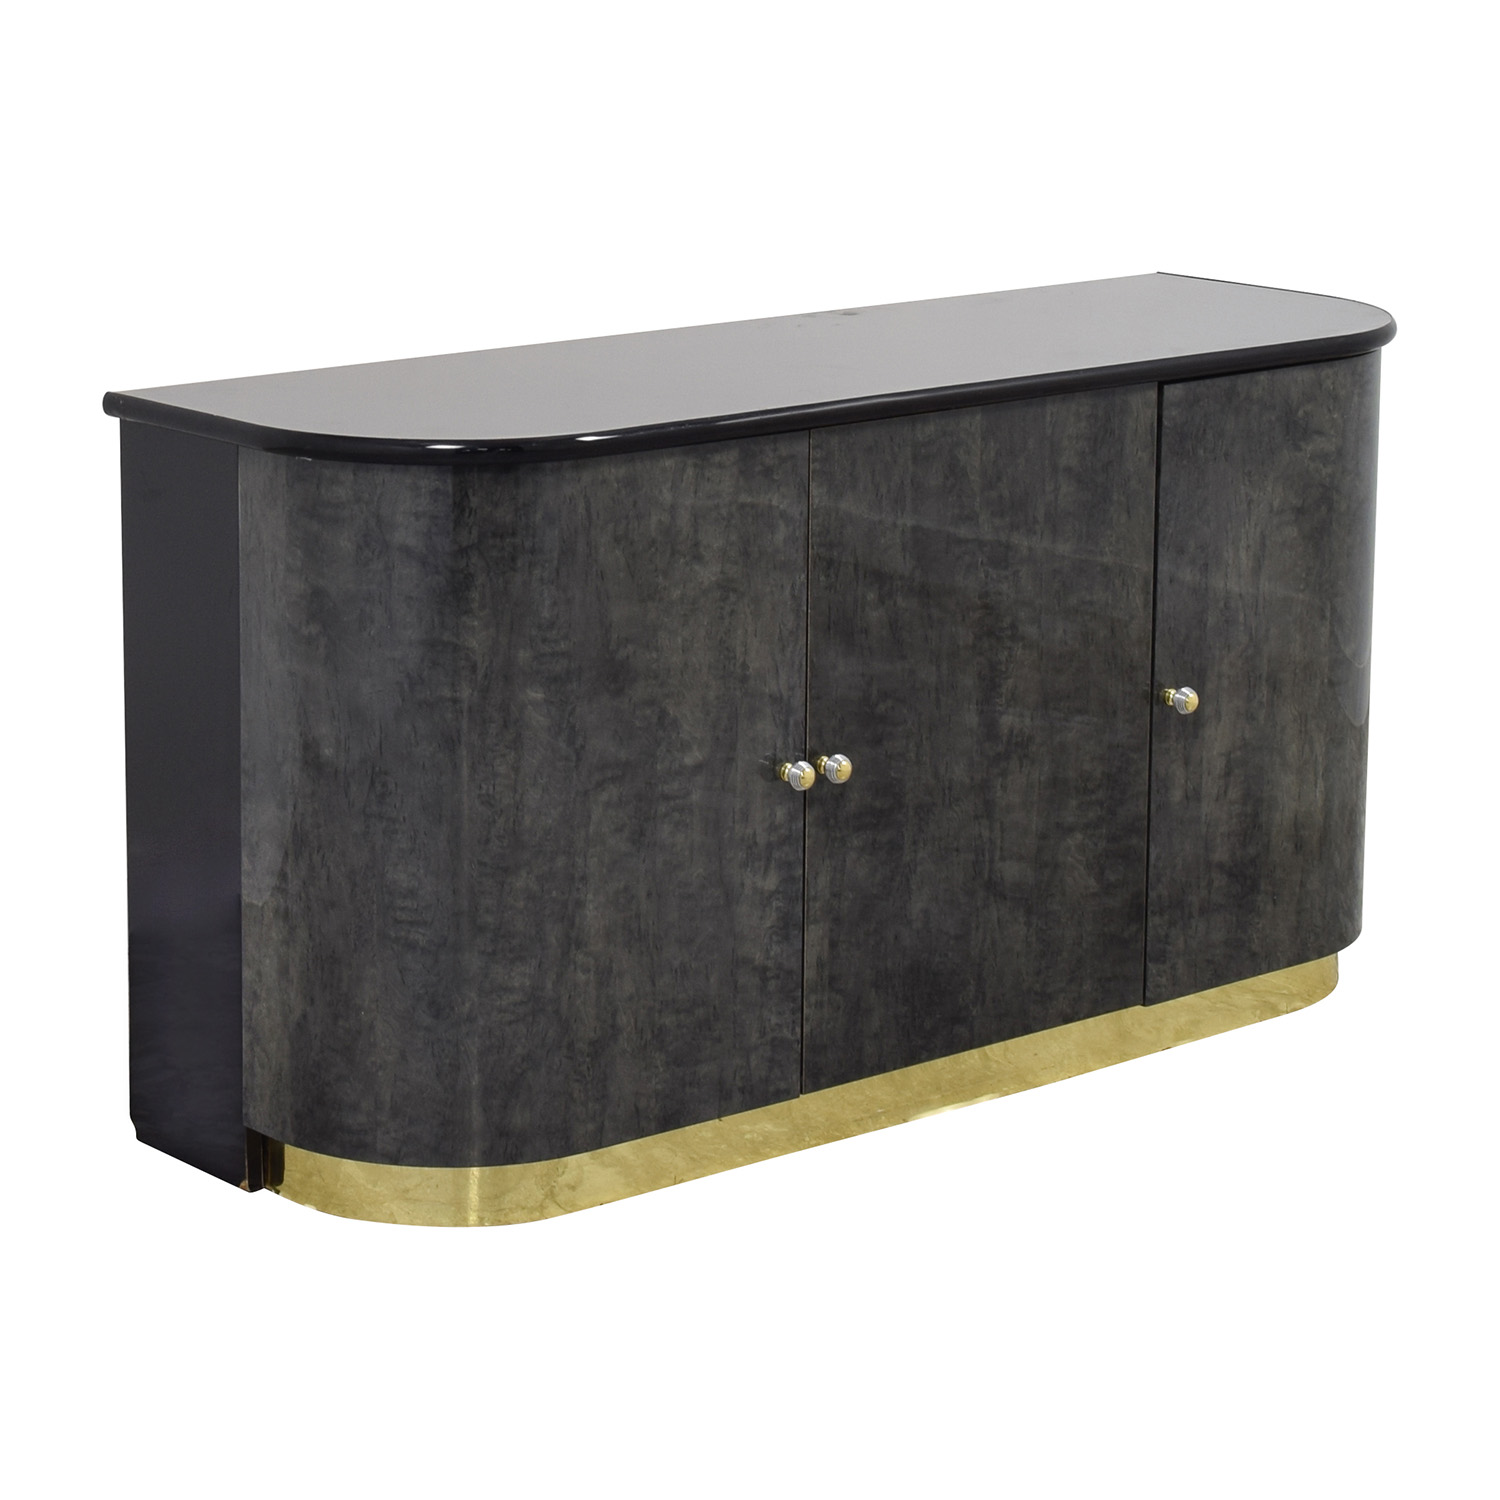 Black Dining Room Cabinet With Gold Accents